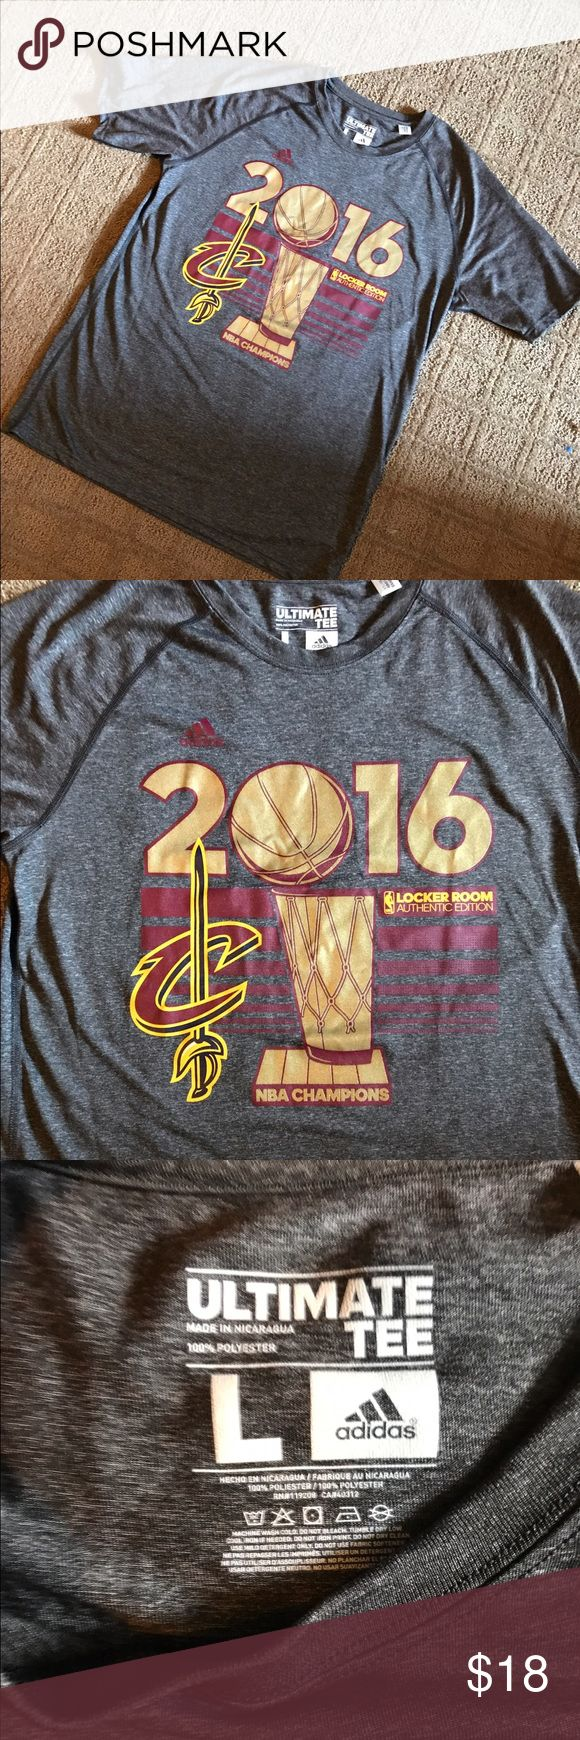 Cleveland Cavaliers 2016 NBA Champs Shirt This is an adidas ultimate t-shirt that was the locker room addition when the Cleveland Cavaliers won the 2016 NBA Championship. adidas Shirts Tees - Short Sleeve